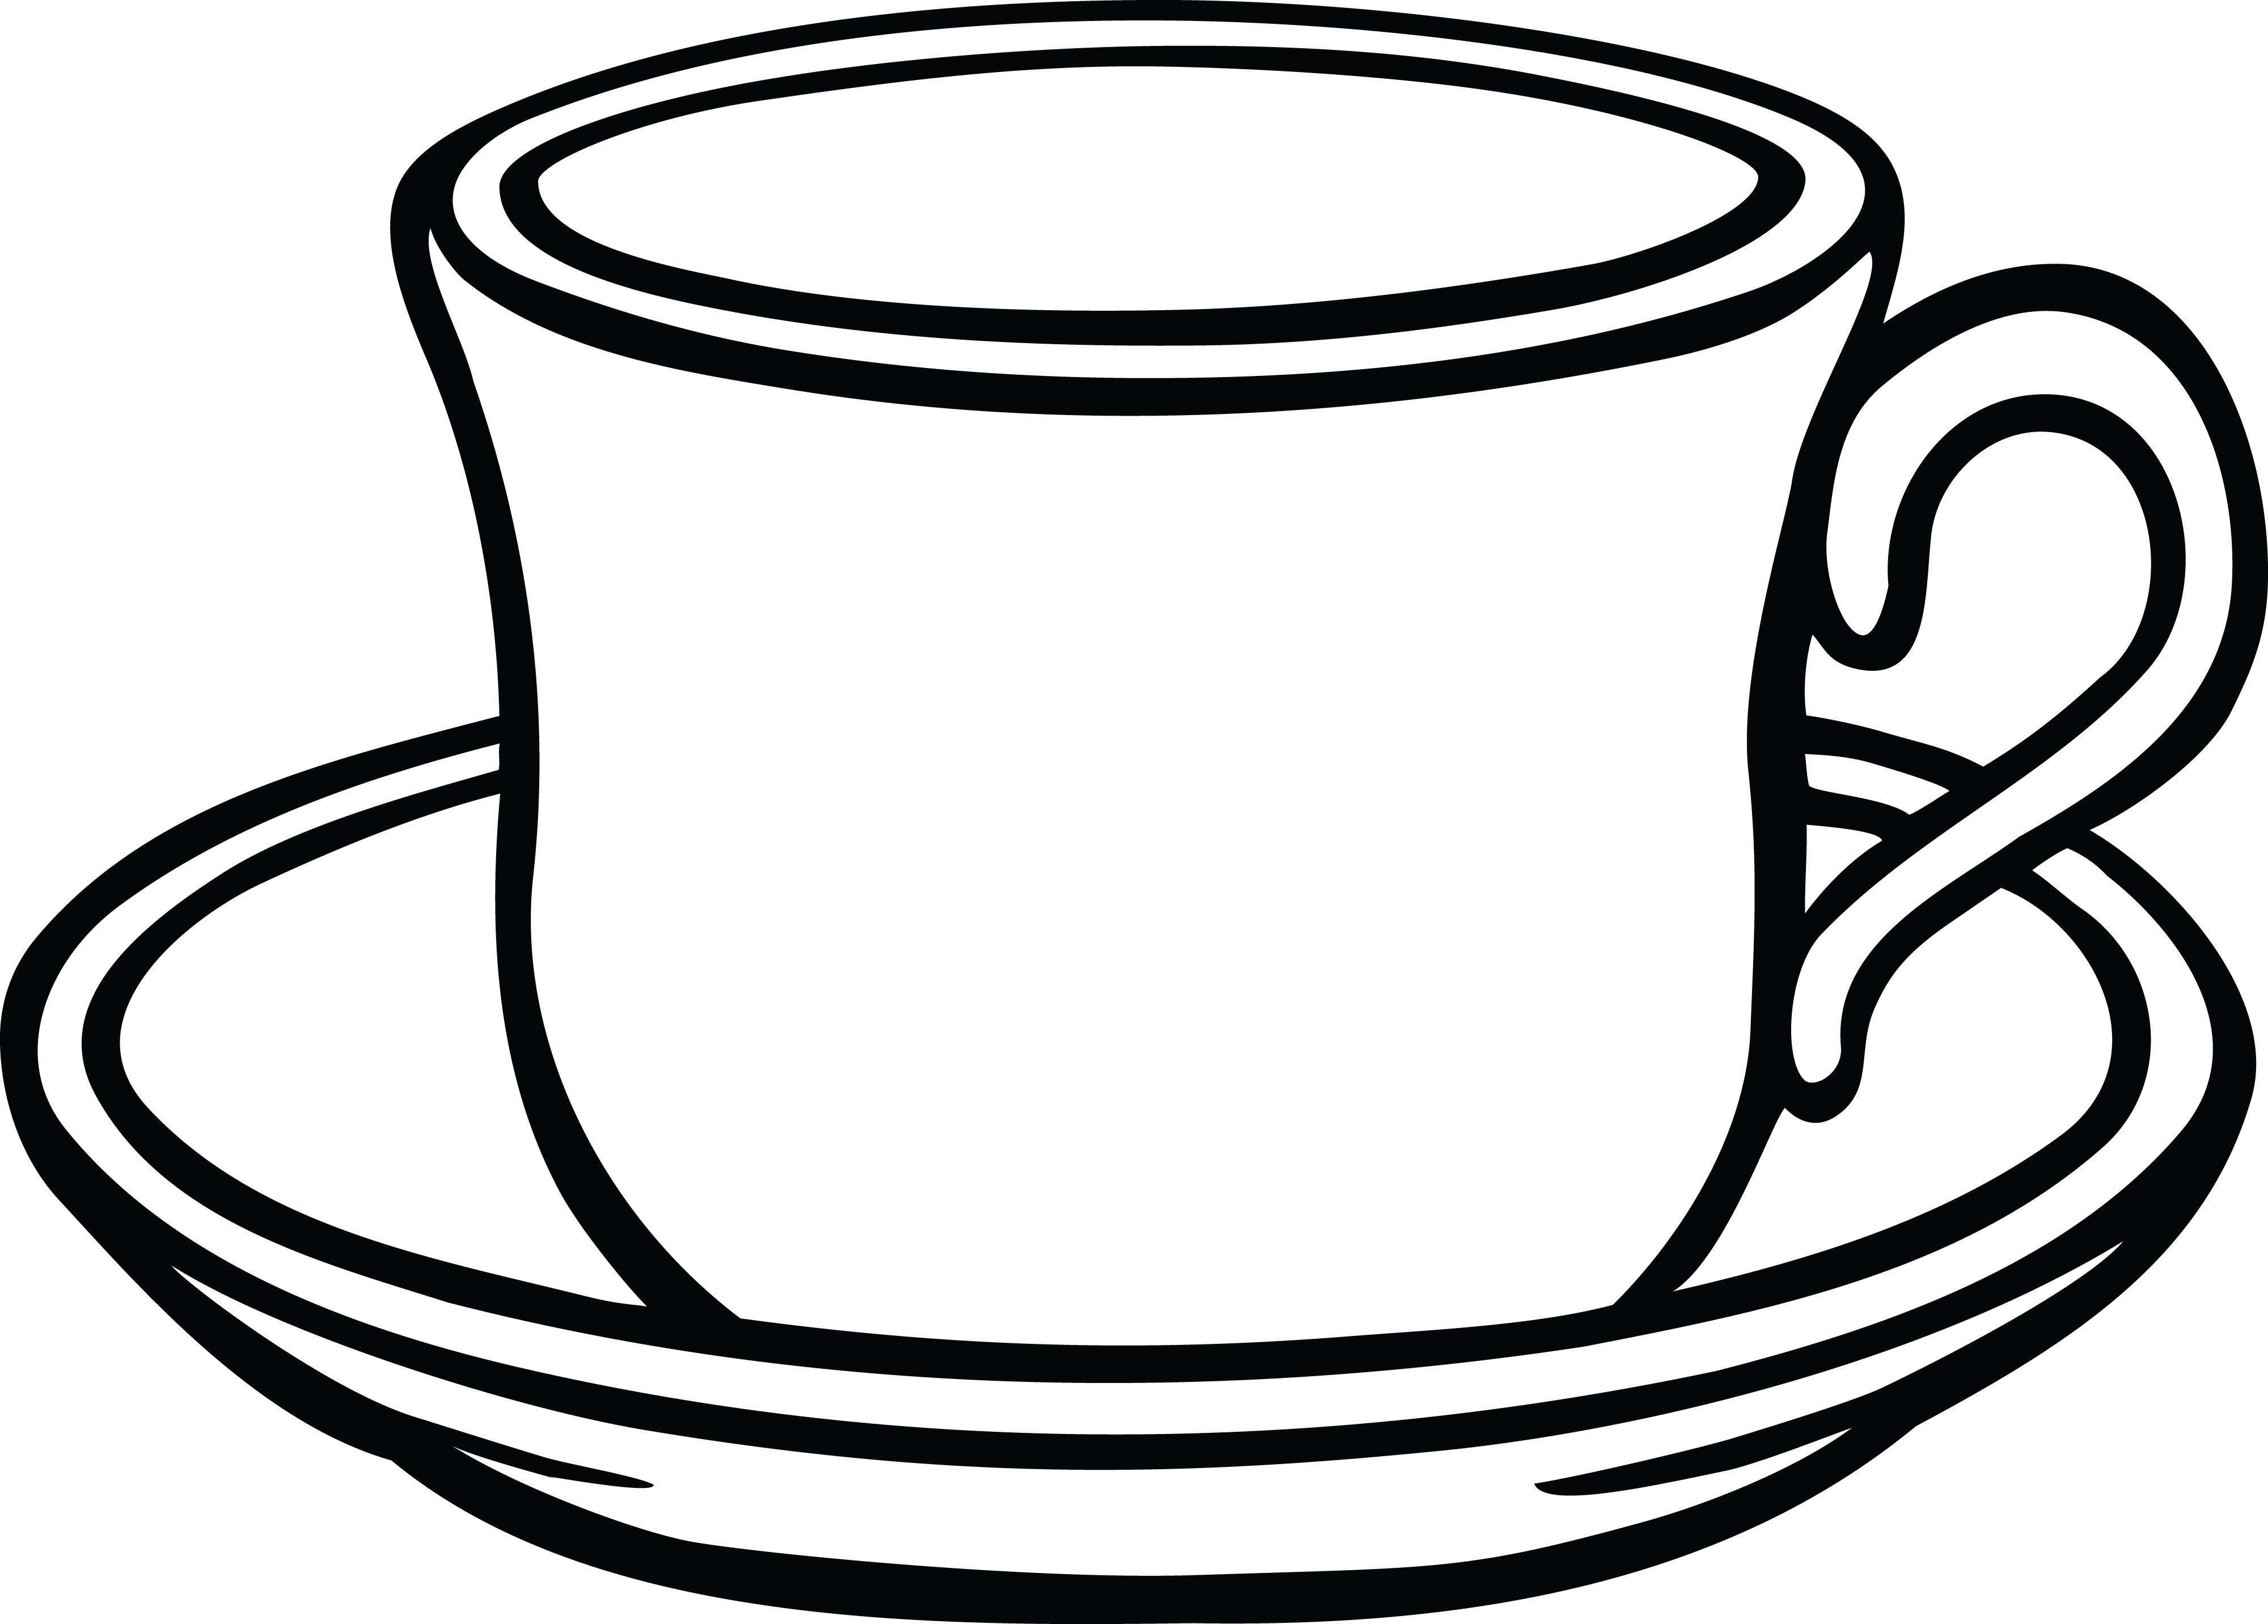 Free Clipart Of A cup of coffee and saucer.